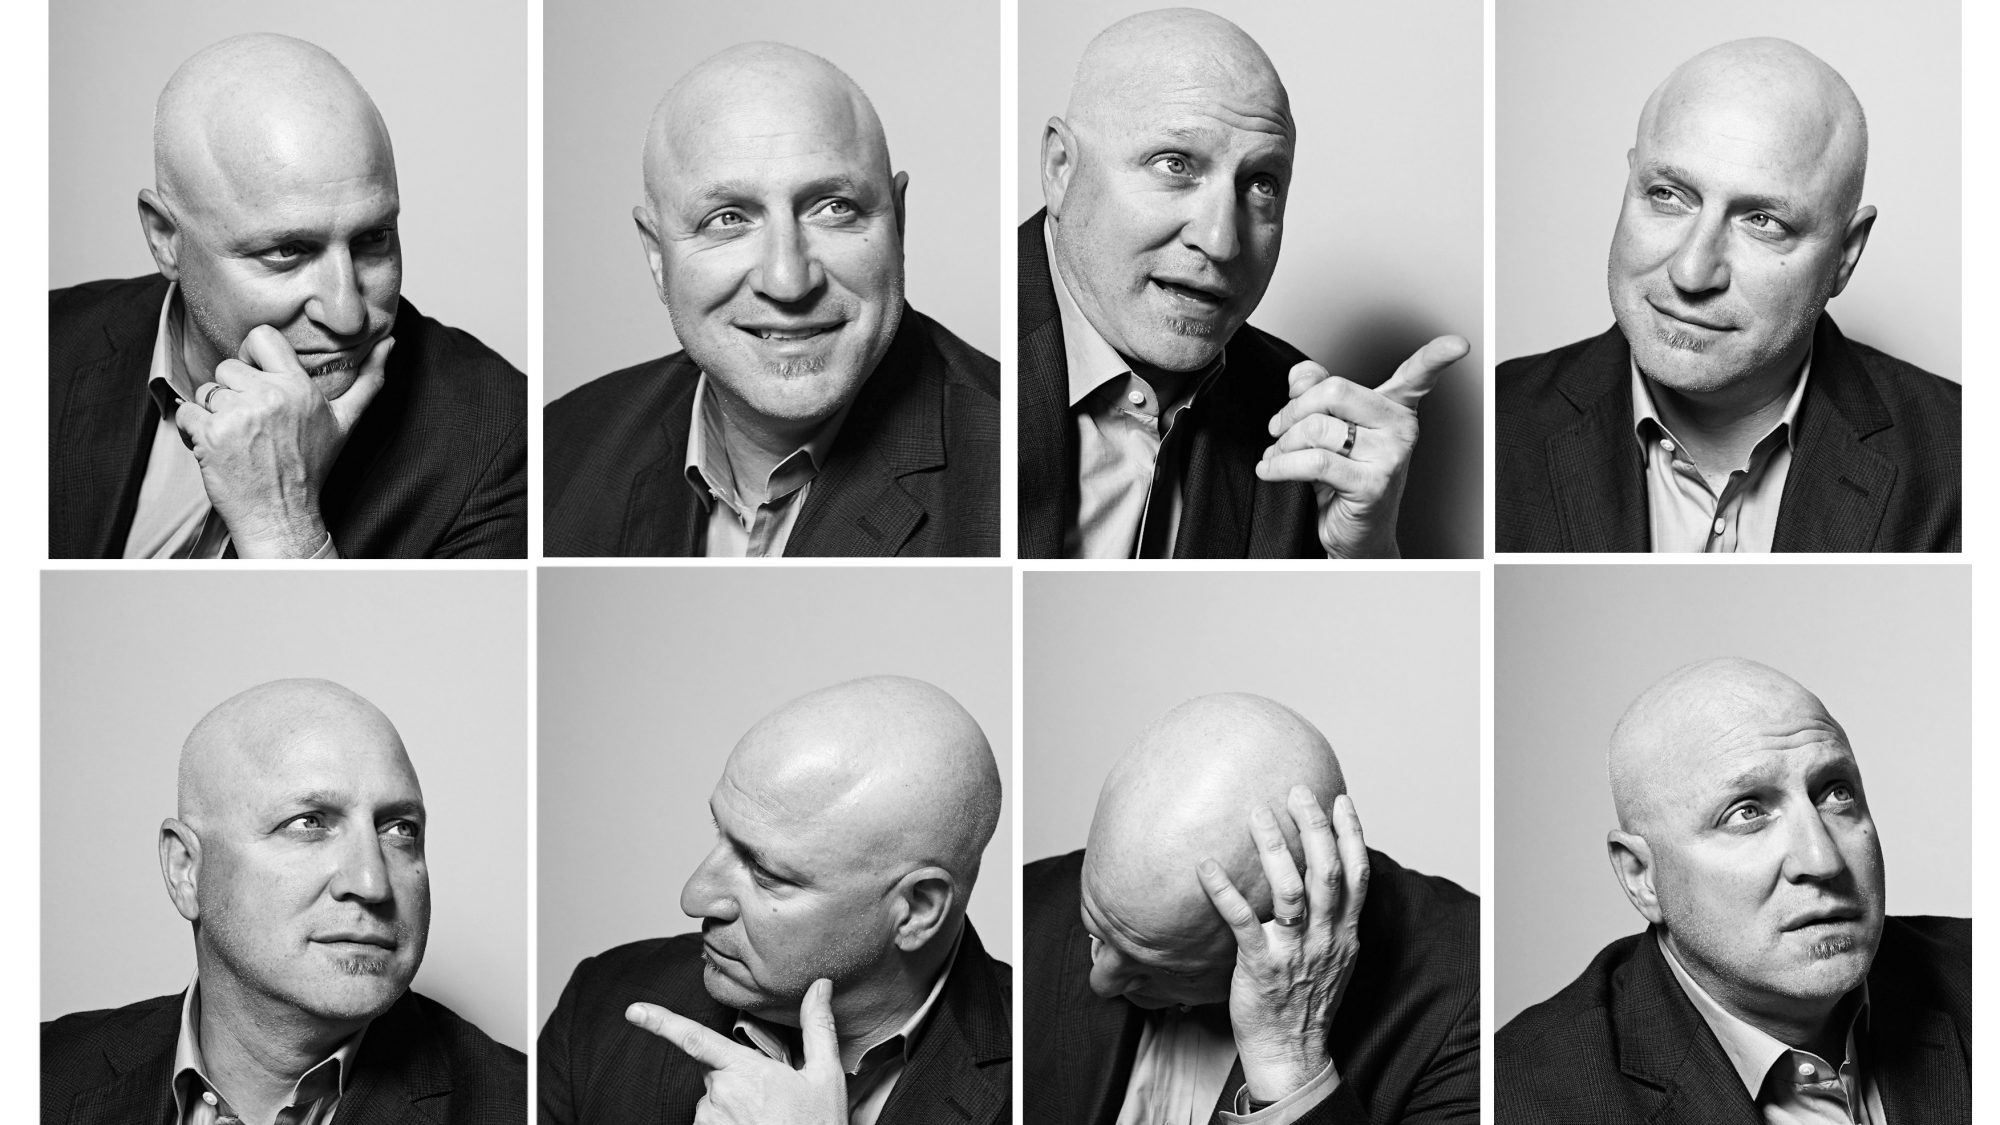 201307-FT-bnc-all-stars-tom-colicchio.jpg